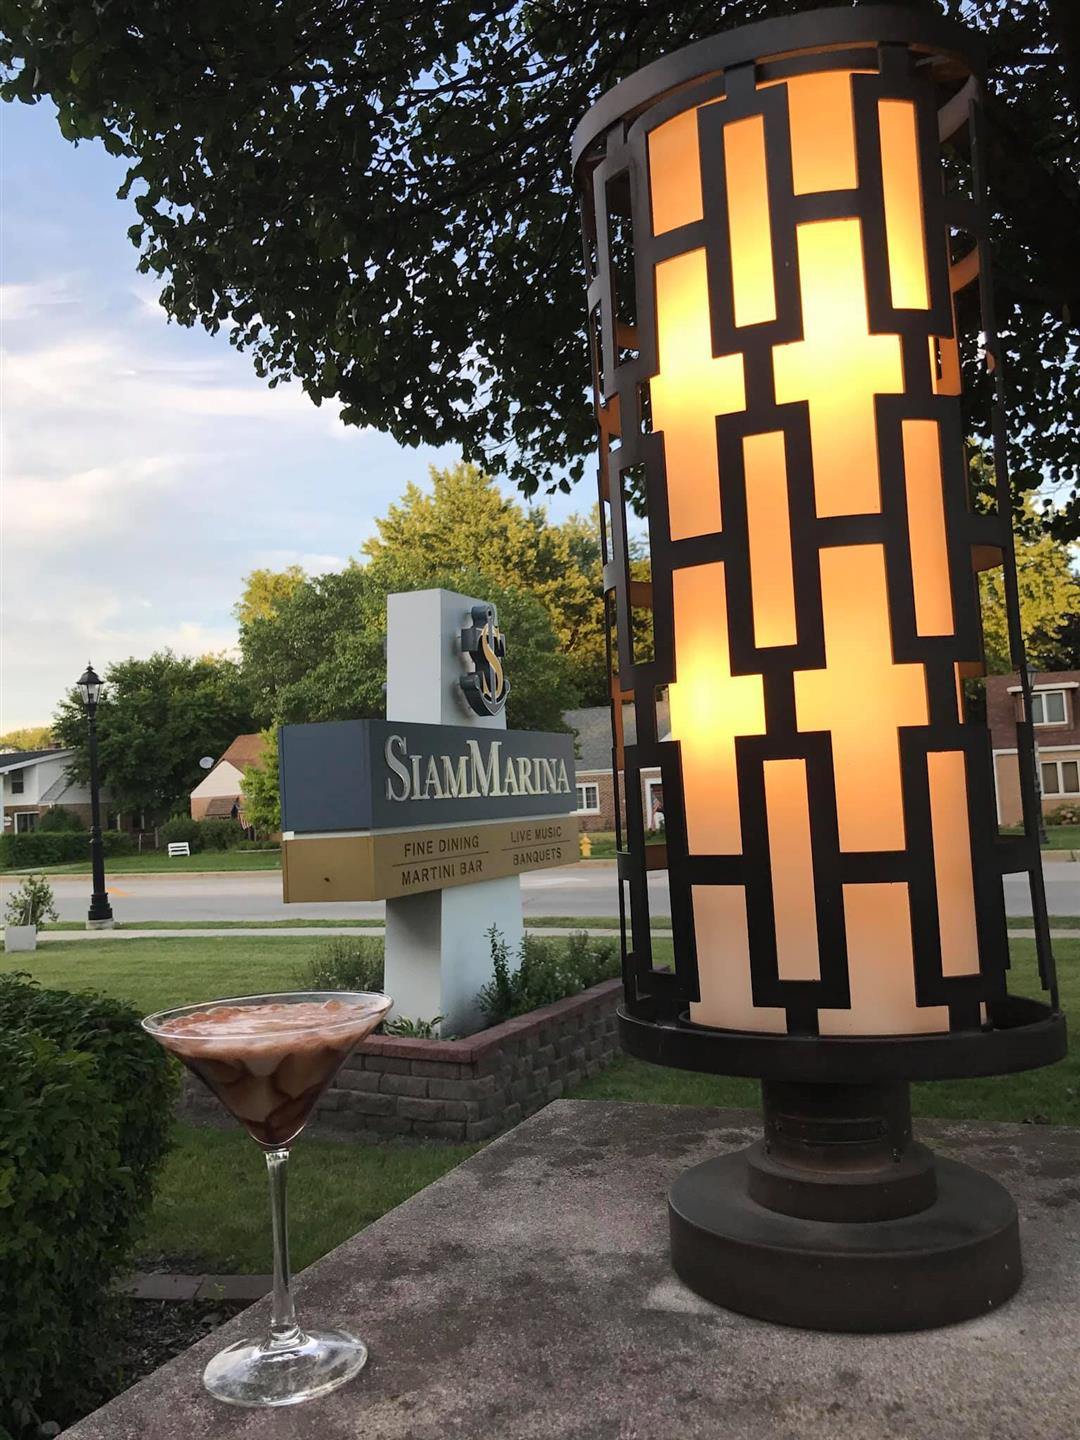 """""""Siam Marina"""" front sign with martini glass and light fixture"""